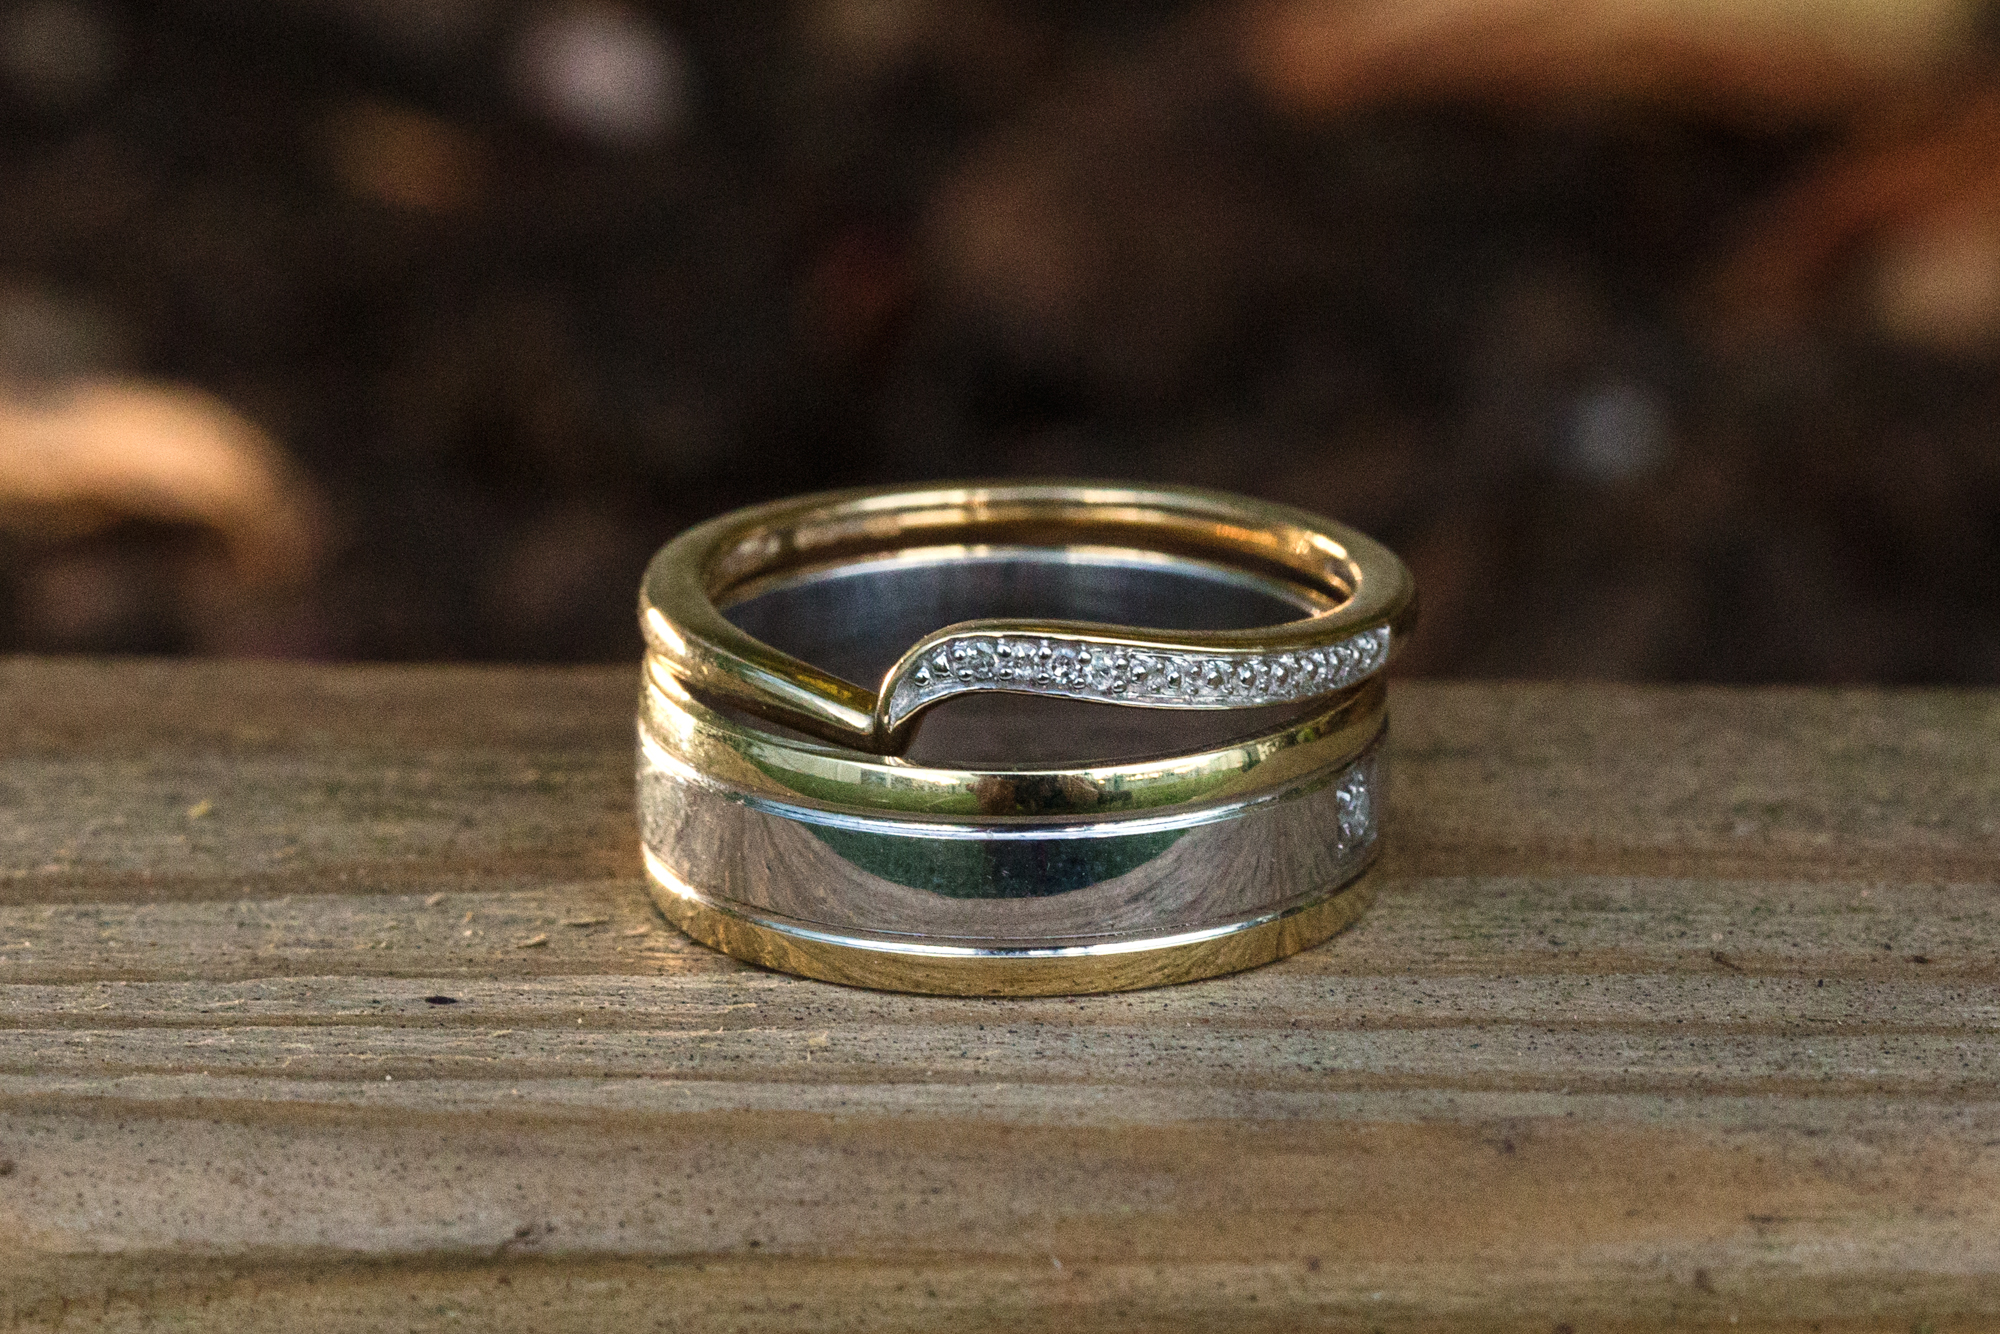 Wedding rings at Ridgeway gold course, Thornhill, Caerphilly Mountain